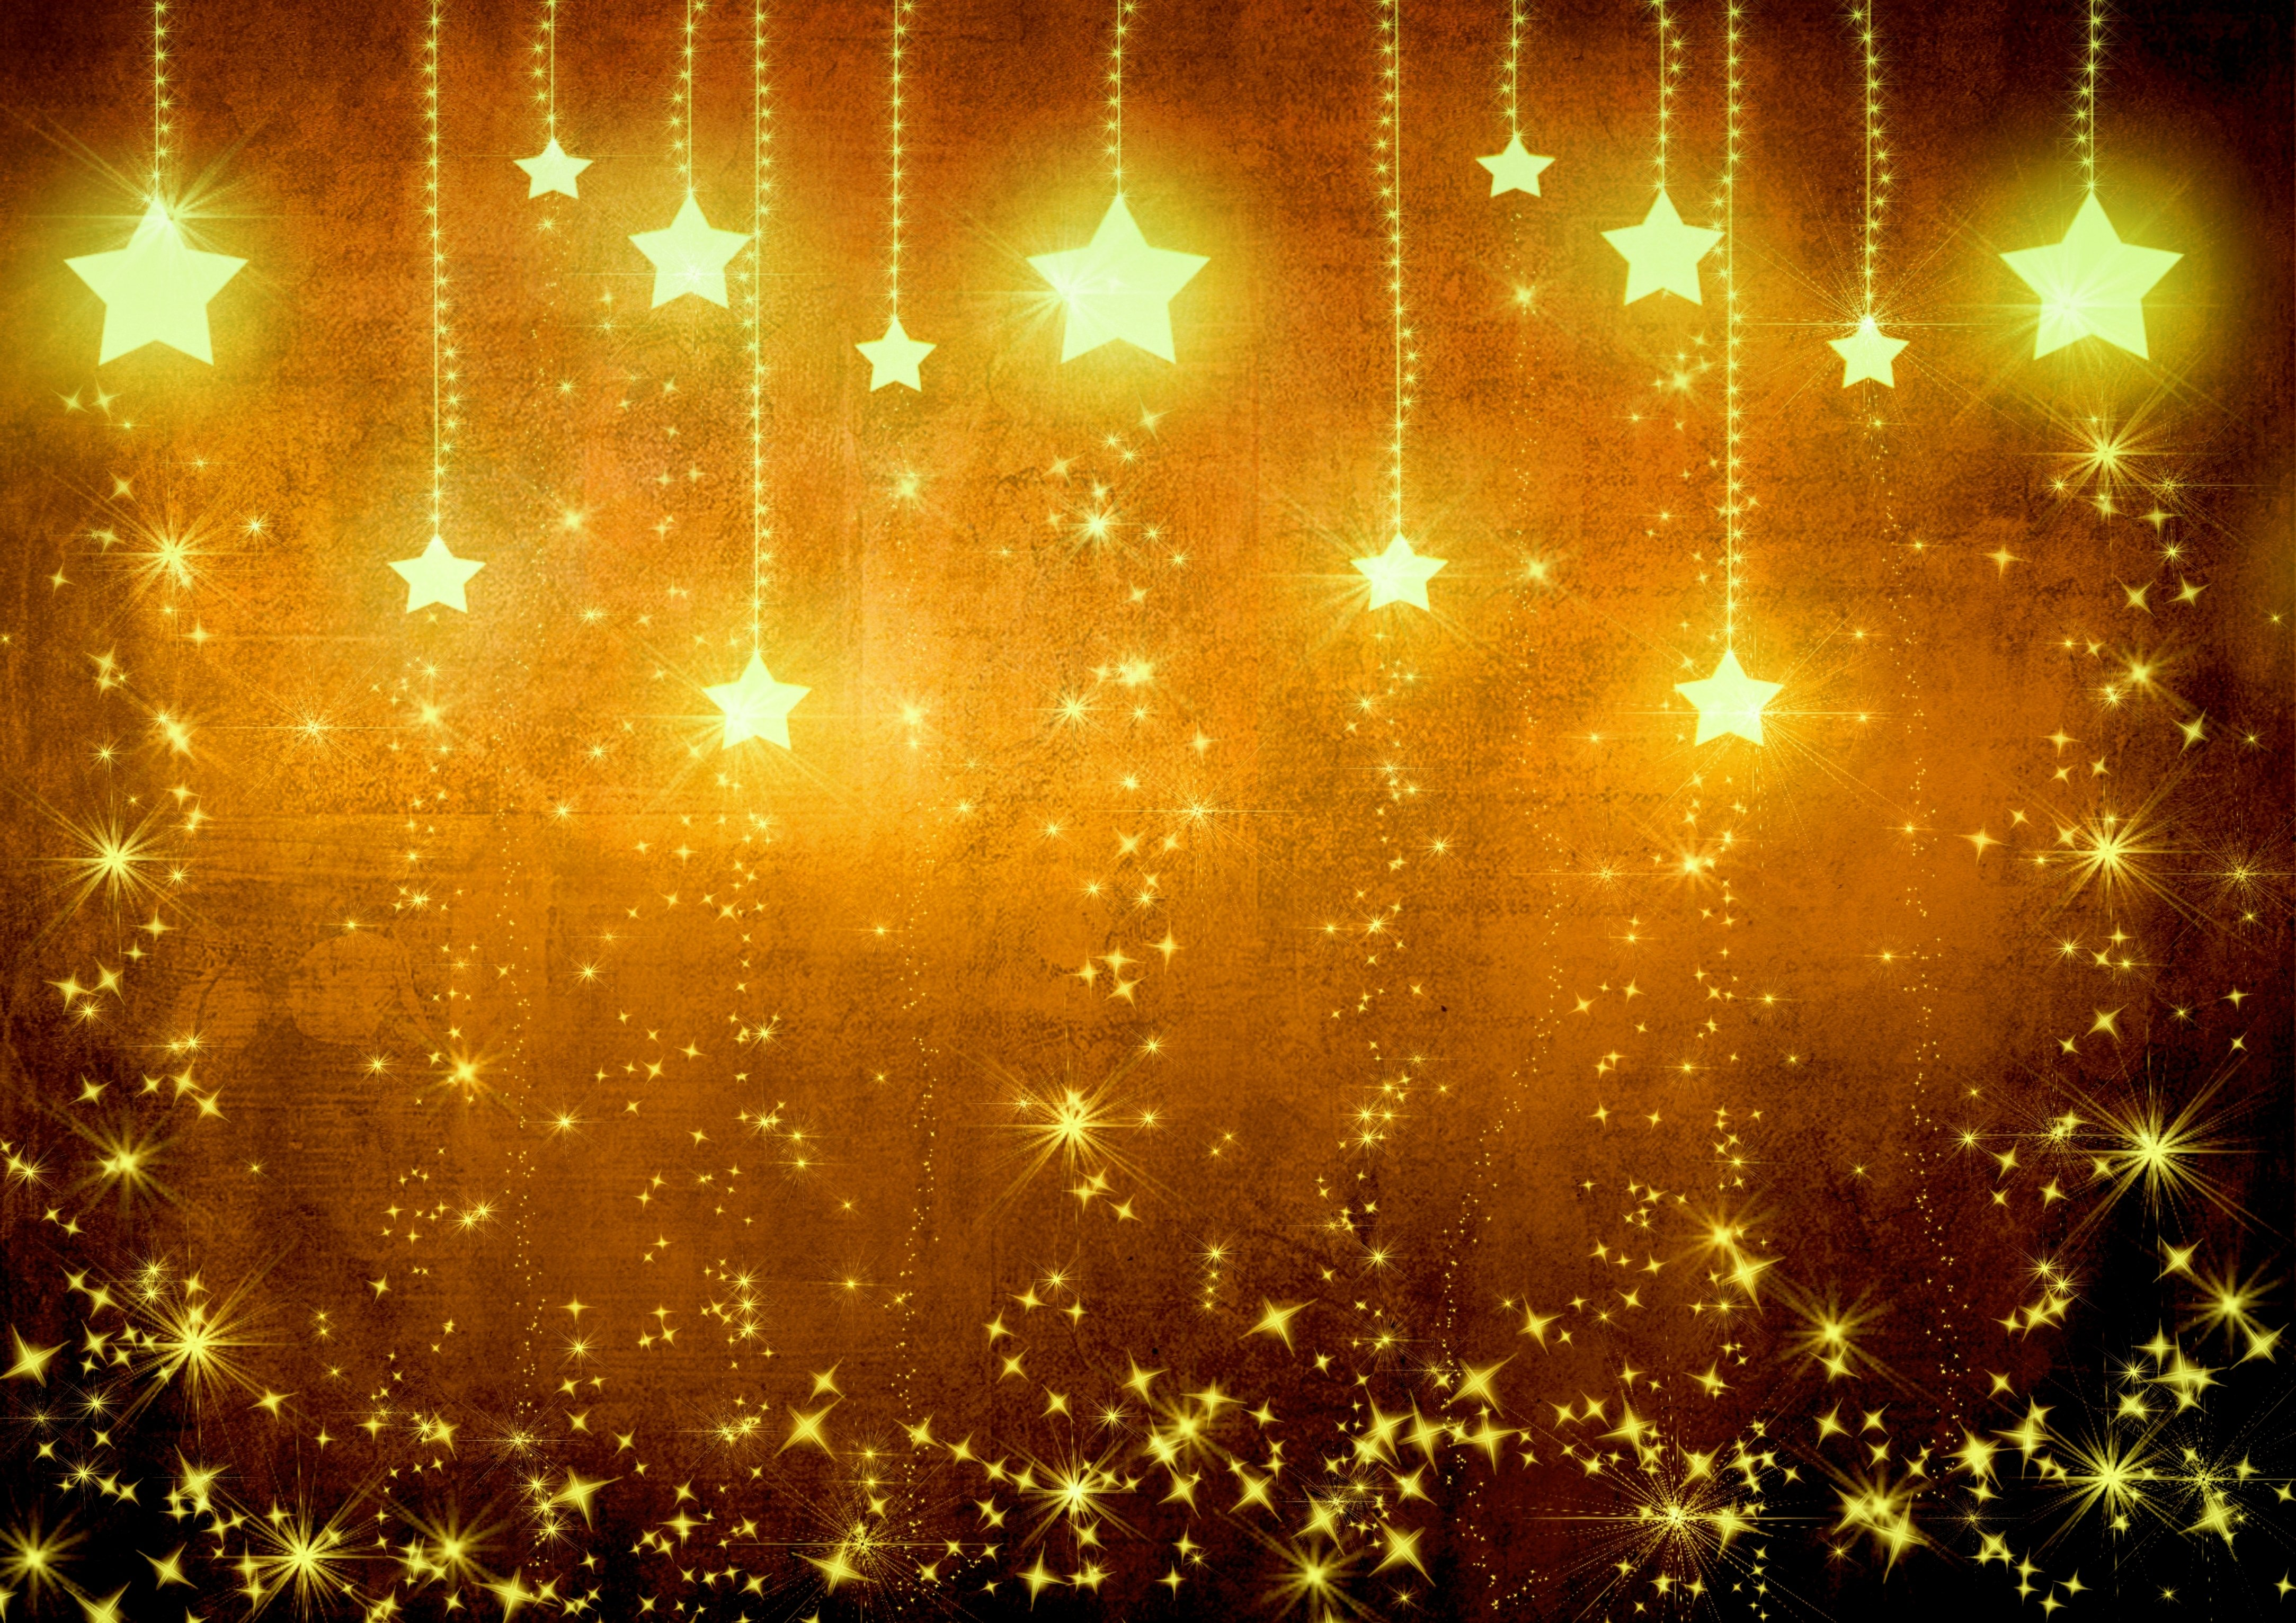 Light Gold Background wallpaper wallpaper hd background desktop 4334x3064